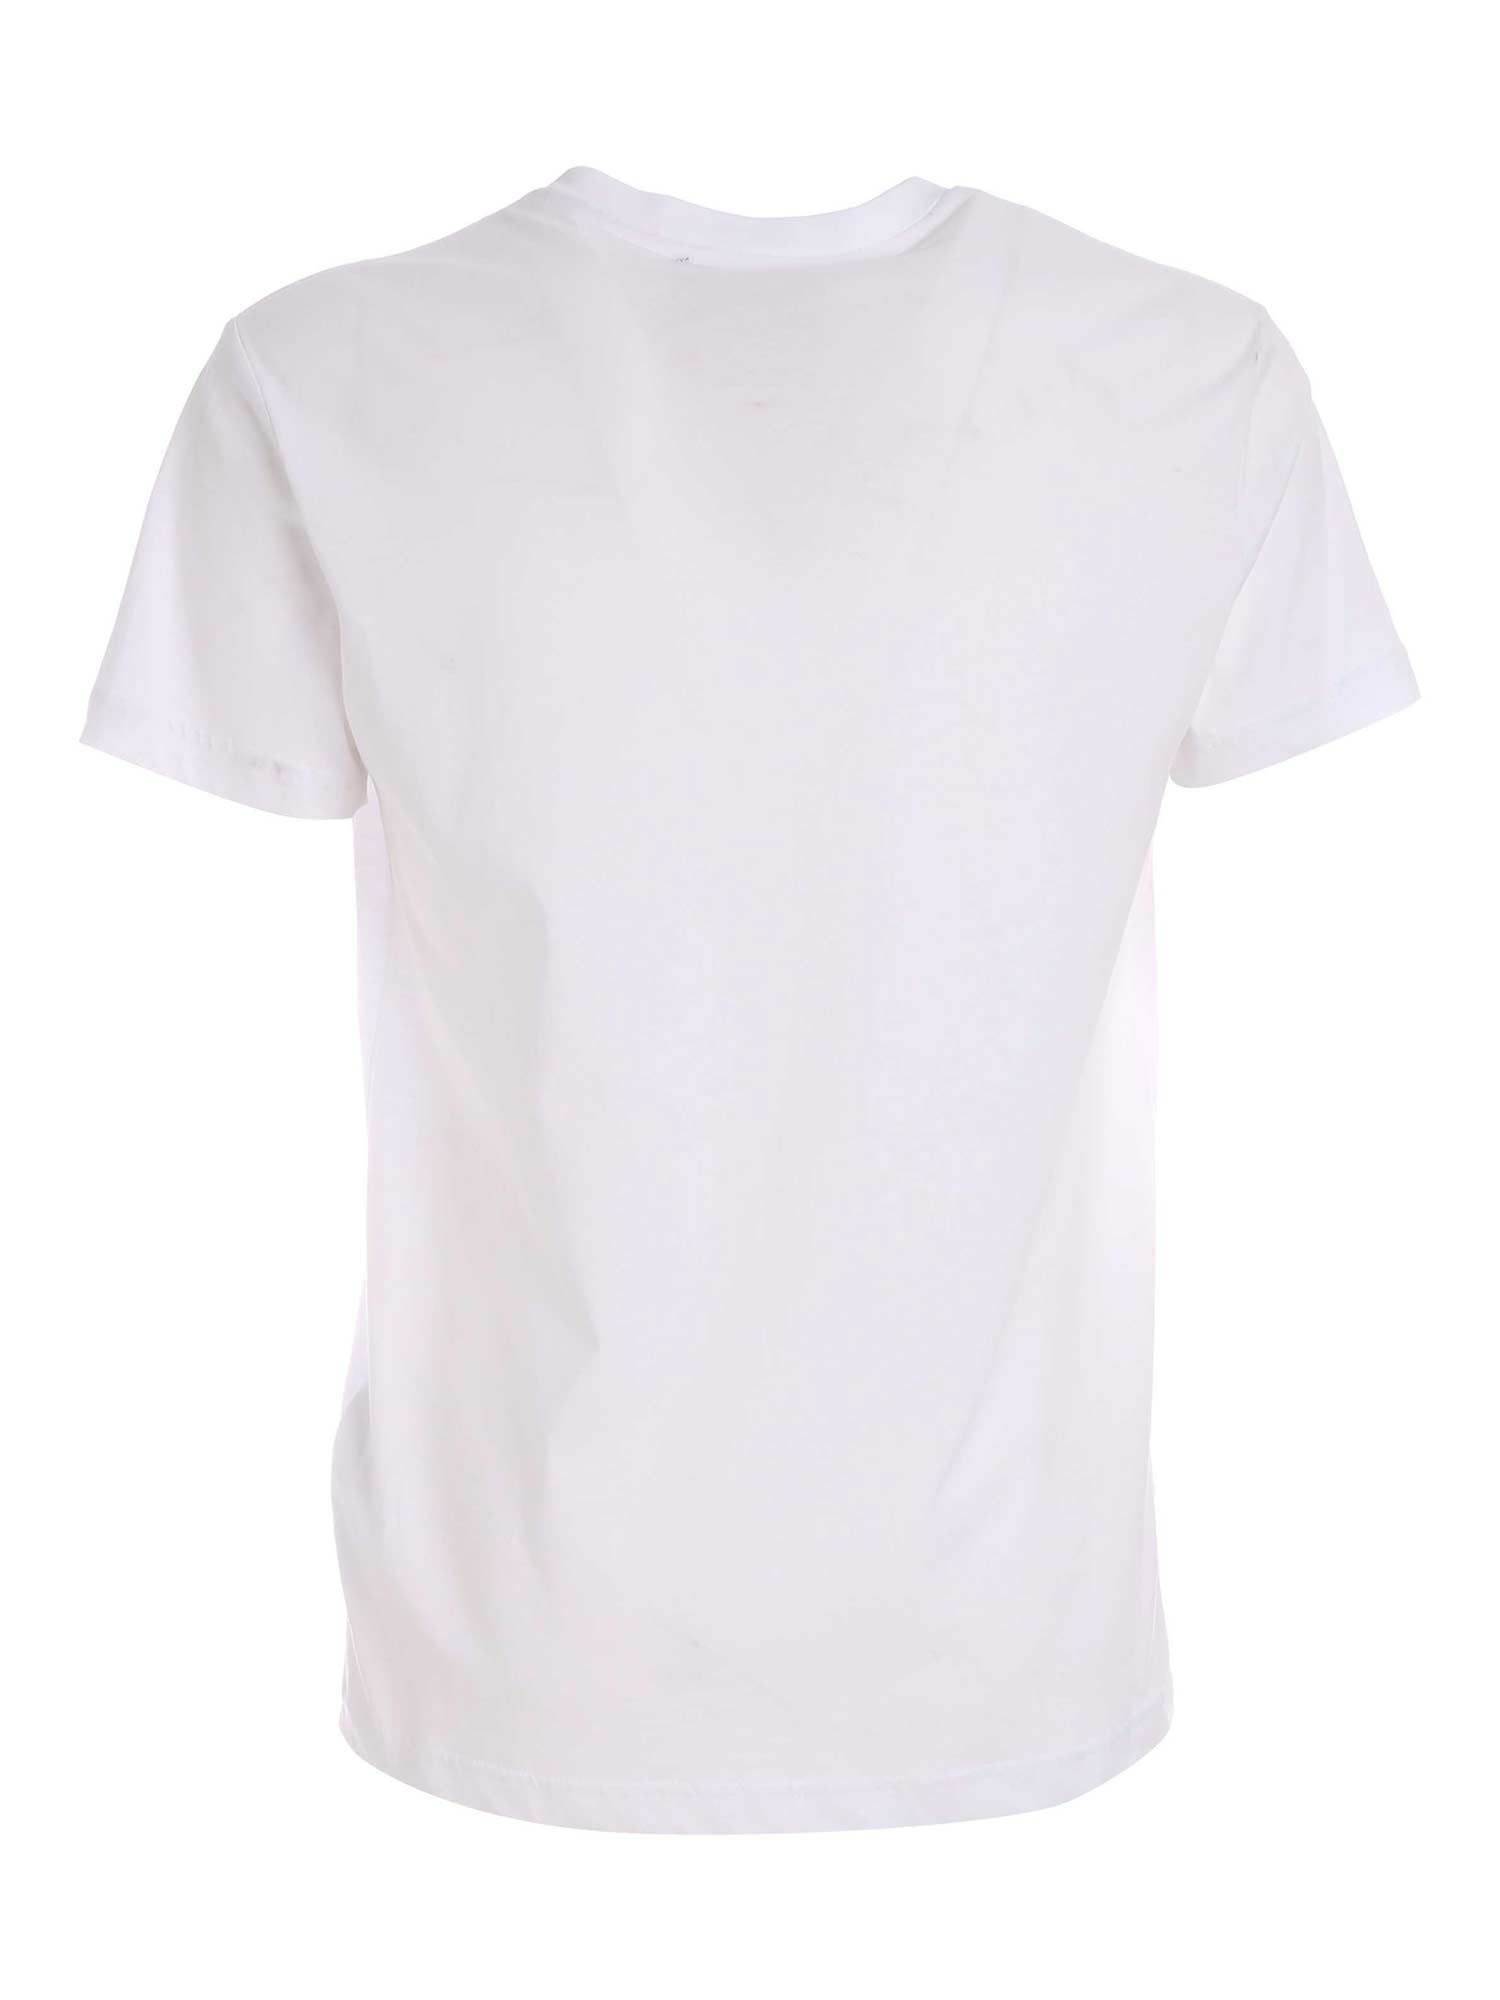 VERSACE JEANS COUTURE Cottons LETTERING LOGO T-SHIRT IN WHITE